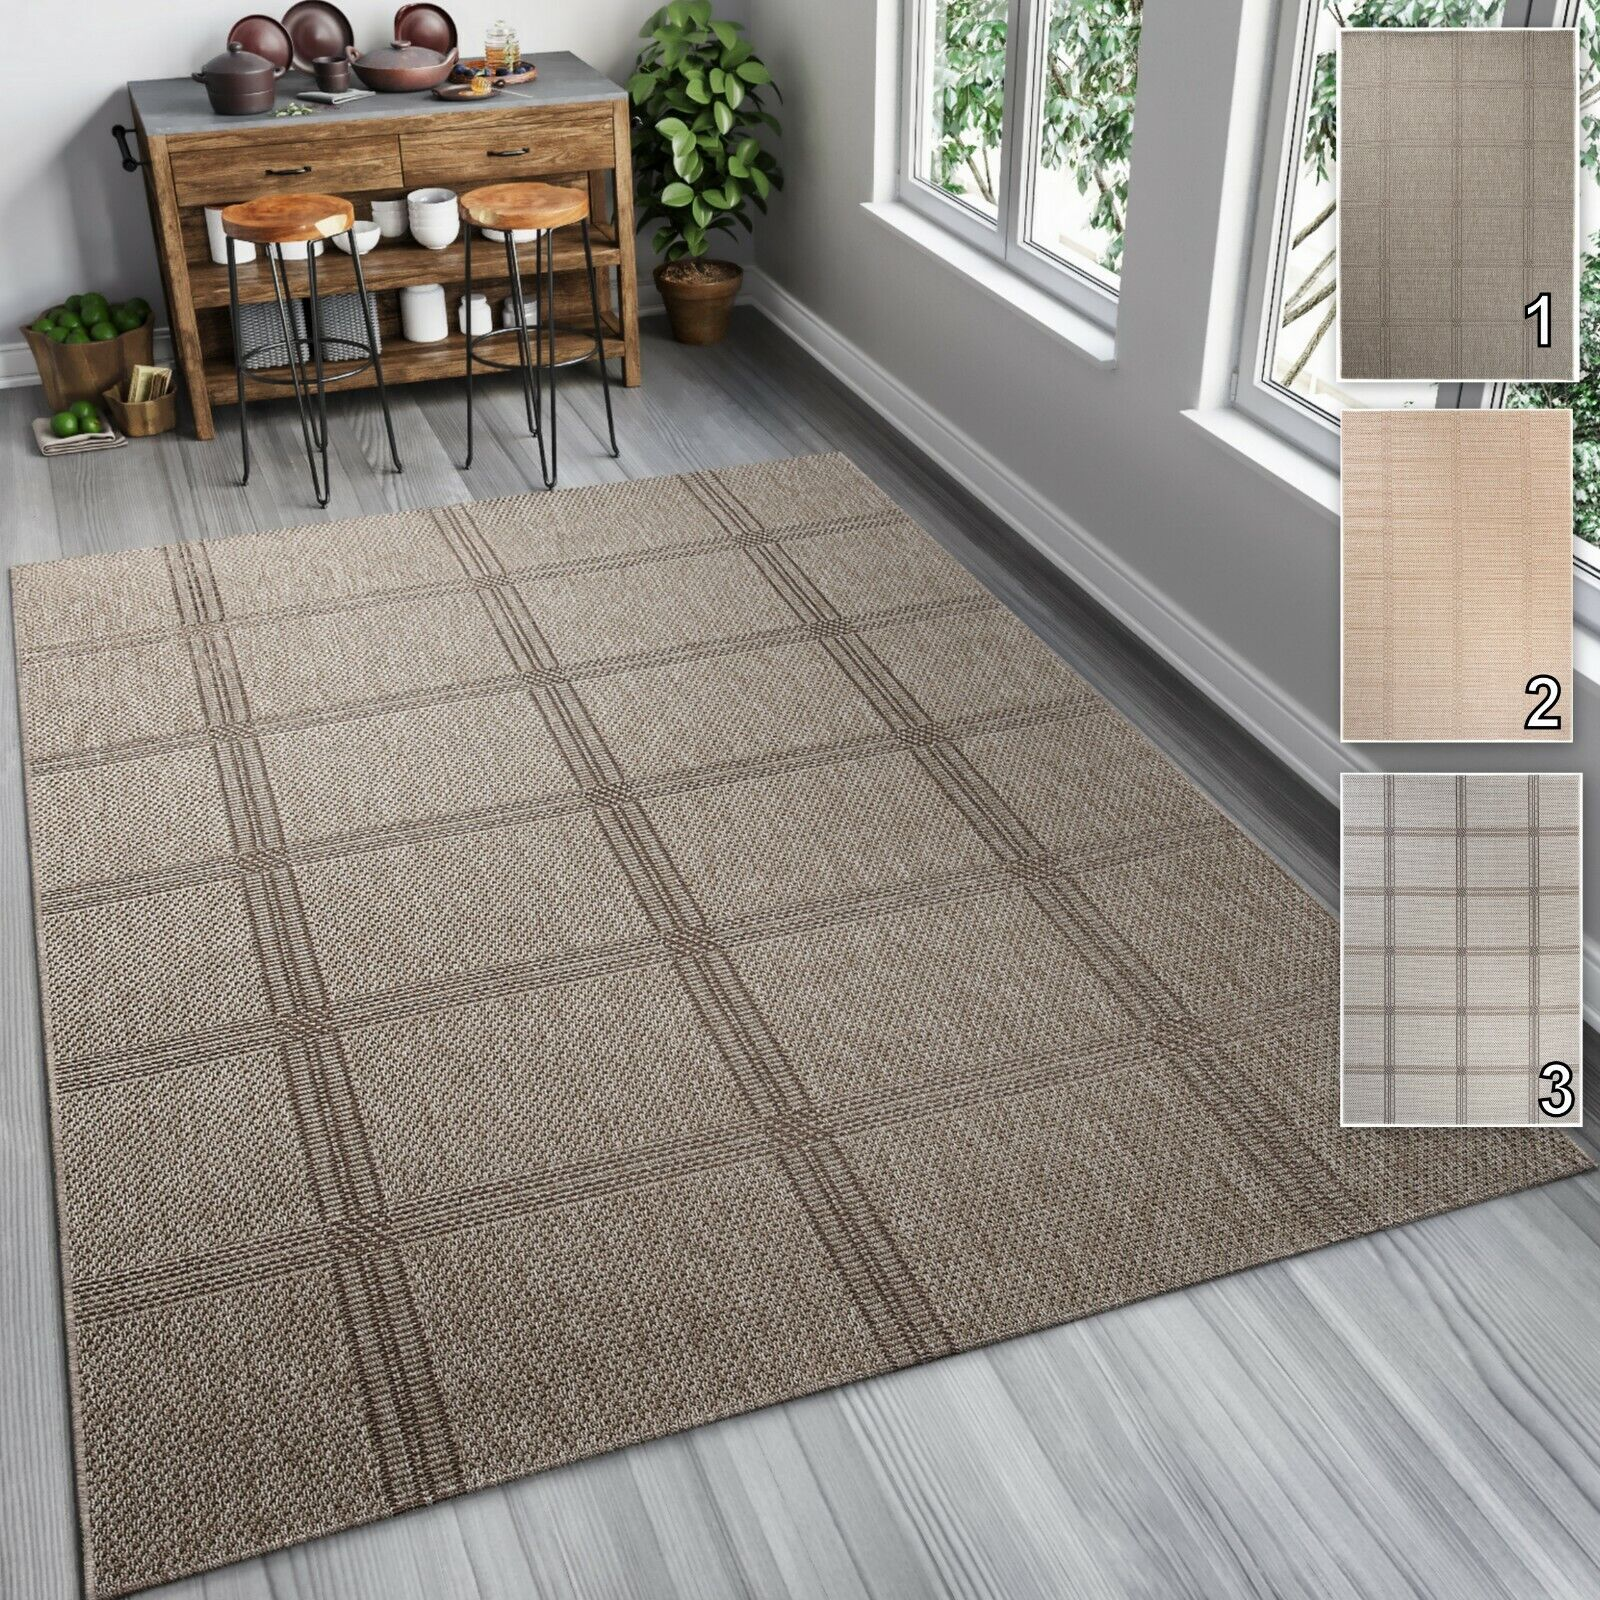 Tapiso Outdoor Indoor tappeti sisal come per cucina Patio DINNING ROOM 6mm Pile